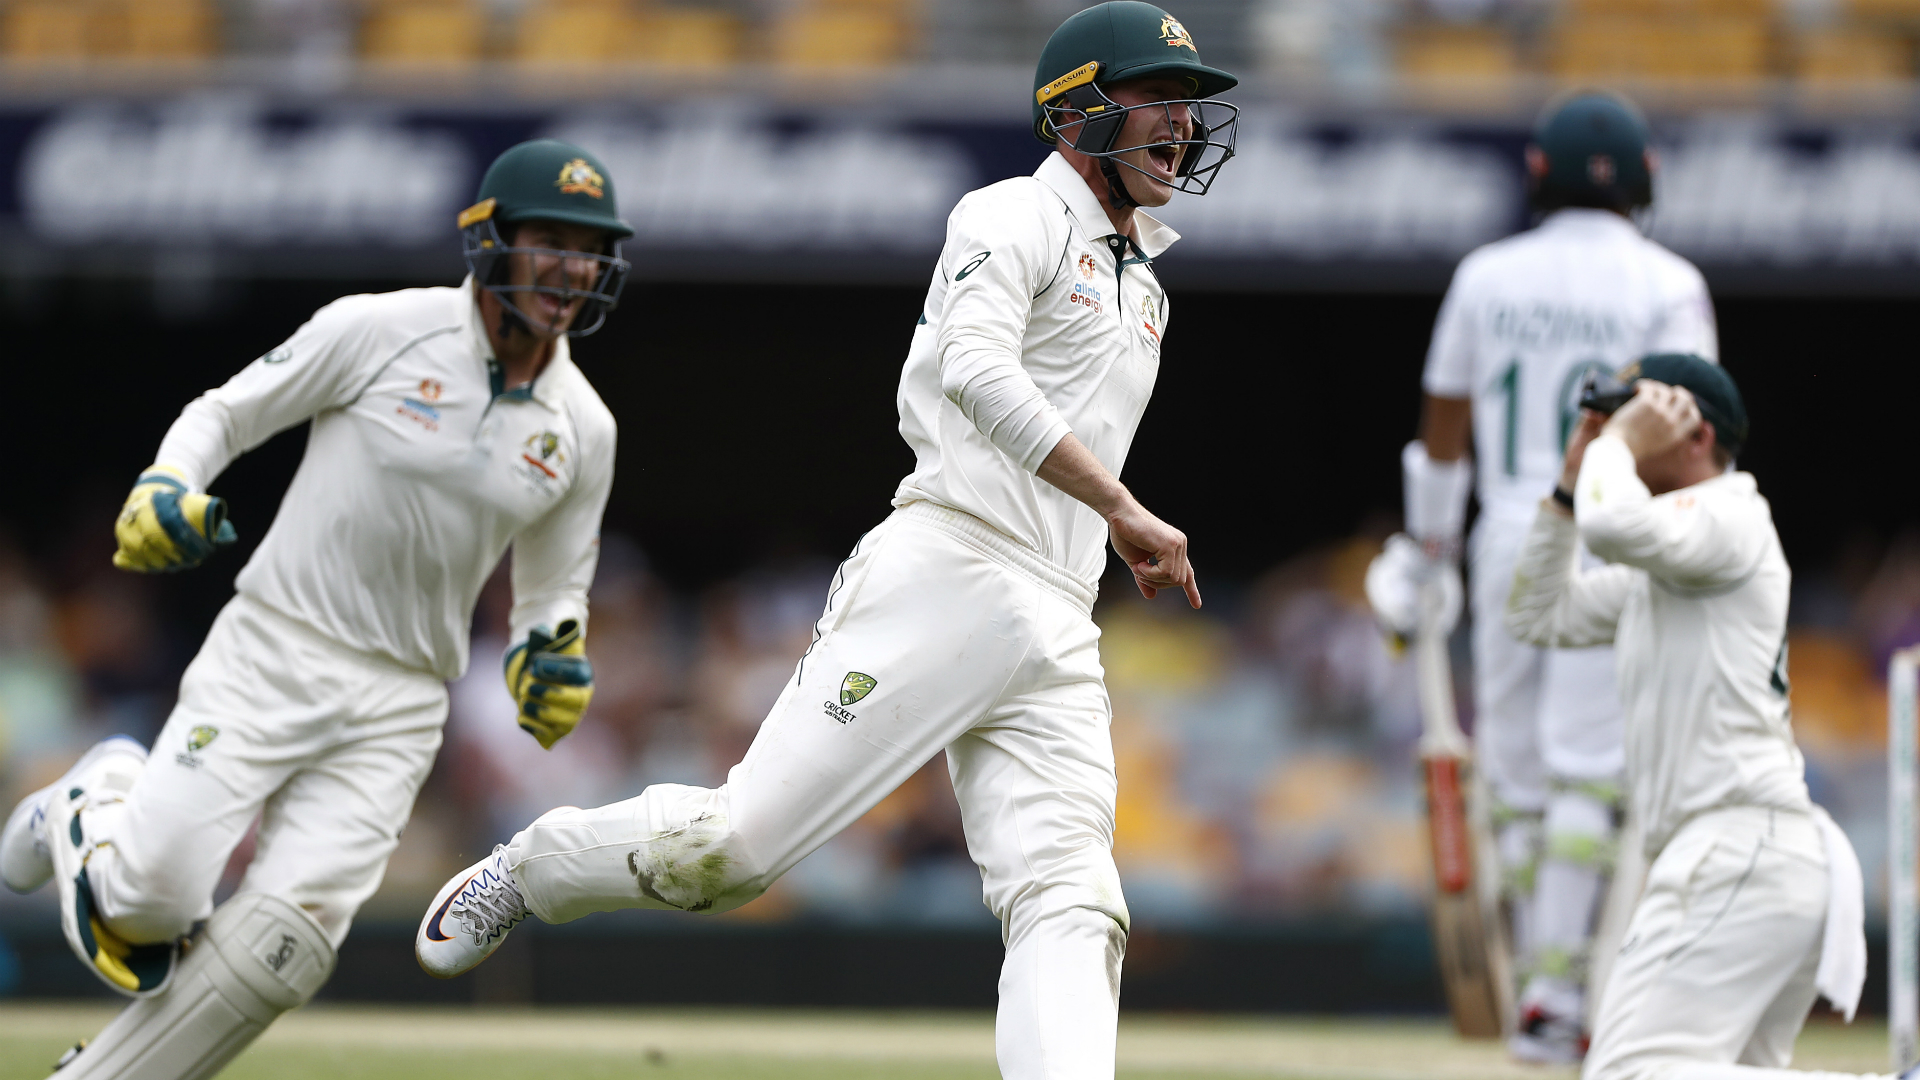 Australia claim crushing win over Pakistan in first Test